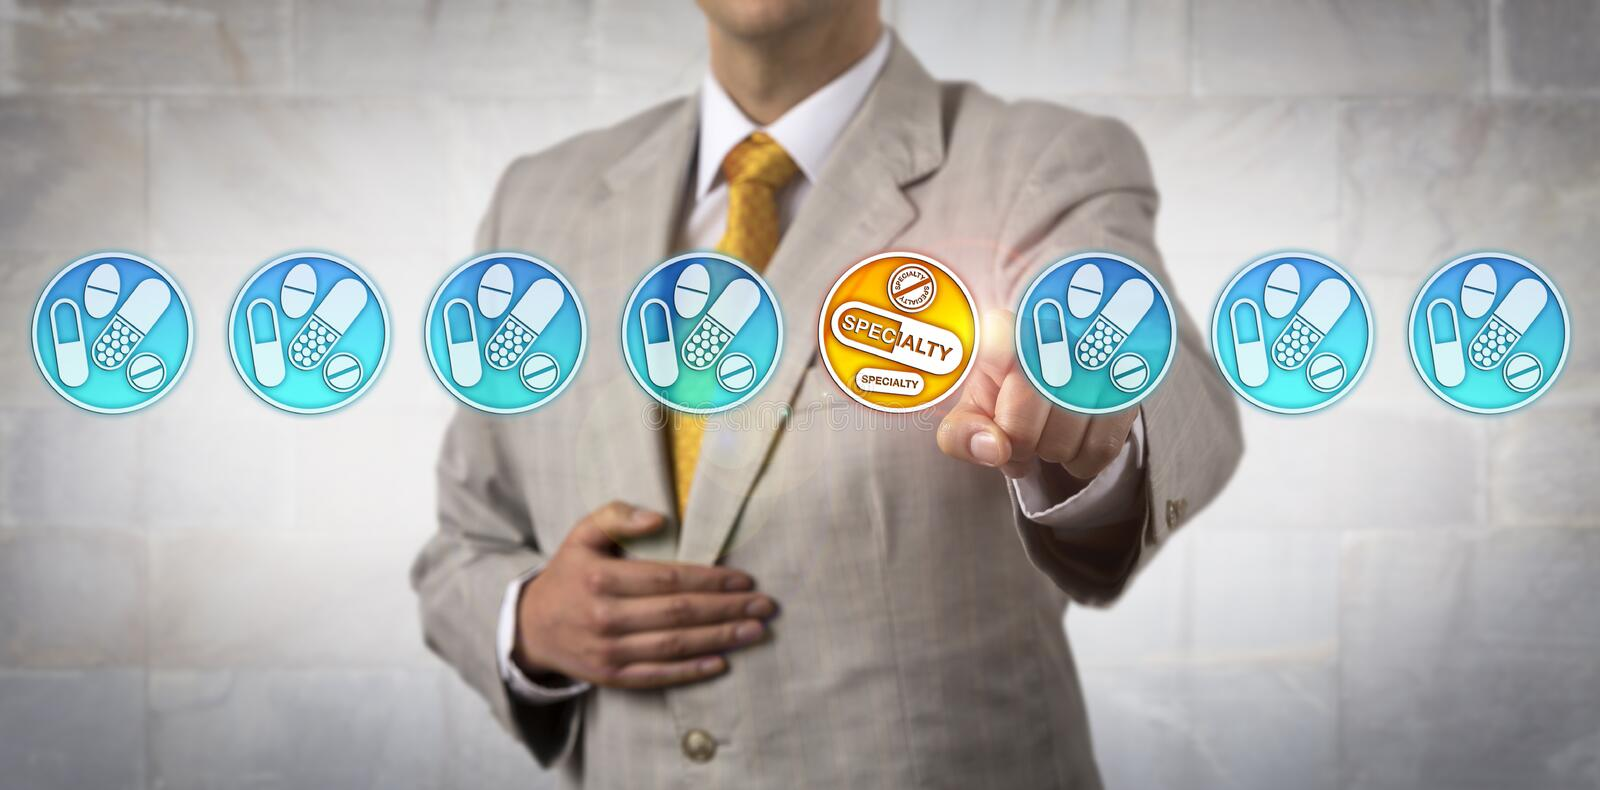 Marketer Selecting Specialty Drugs In Line-up. Unrecognizable pharma marketer selecting the only specialty drug icon in a line-up of non-specialty stock images